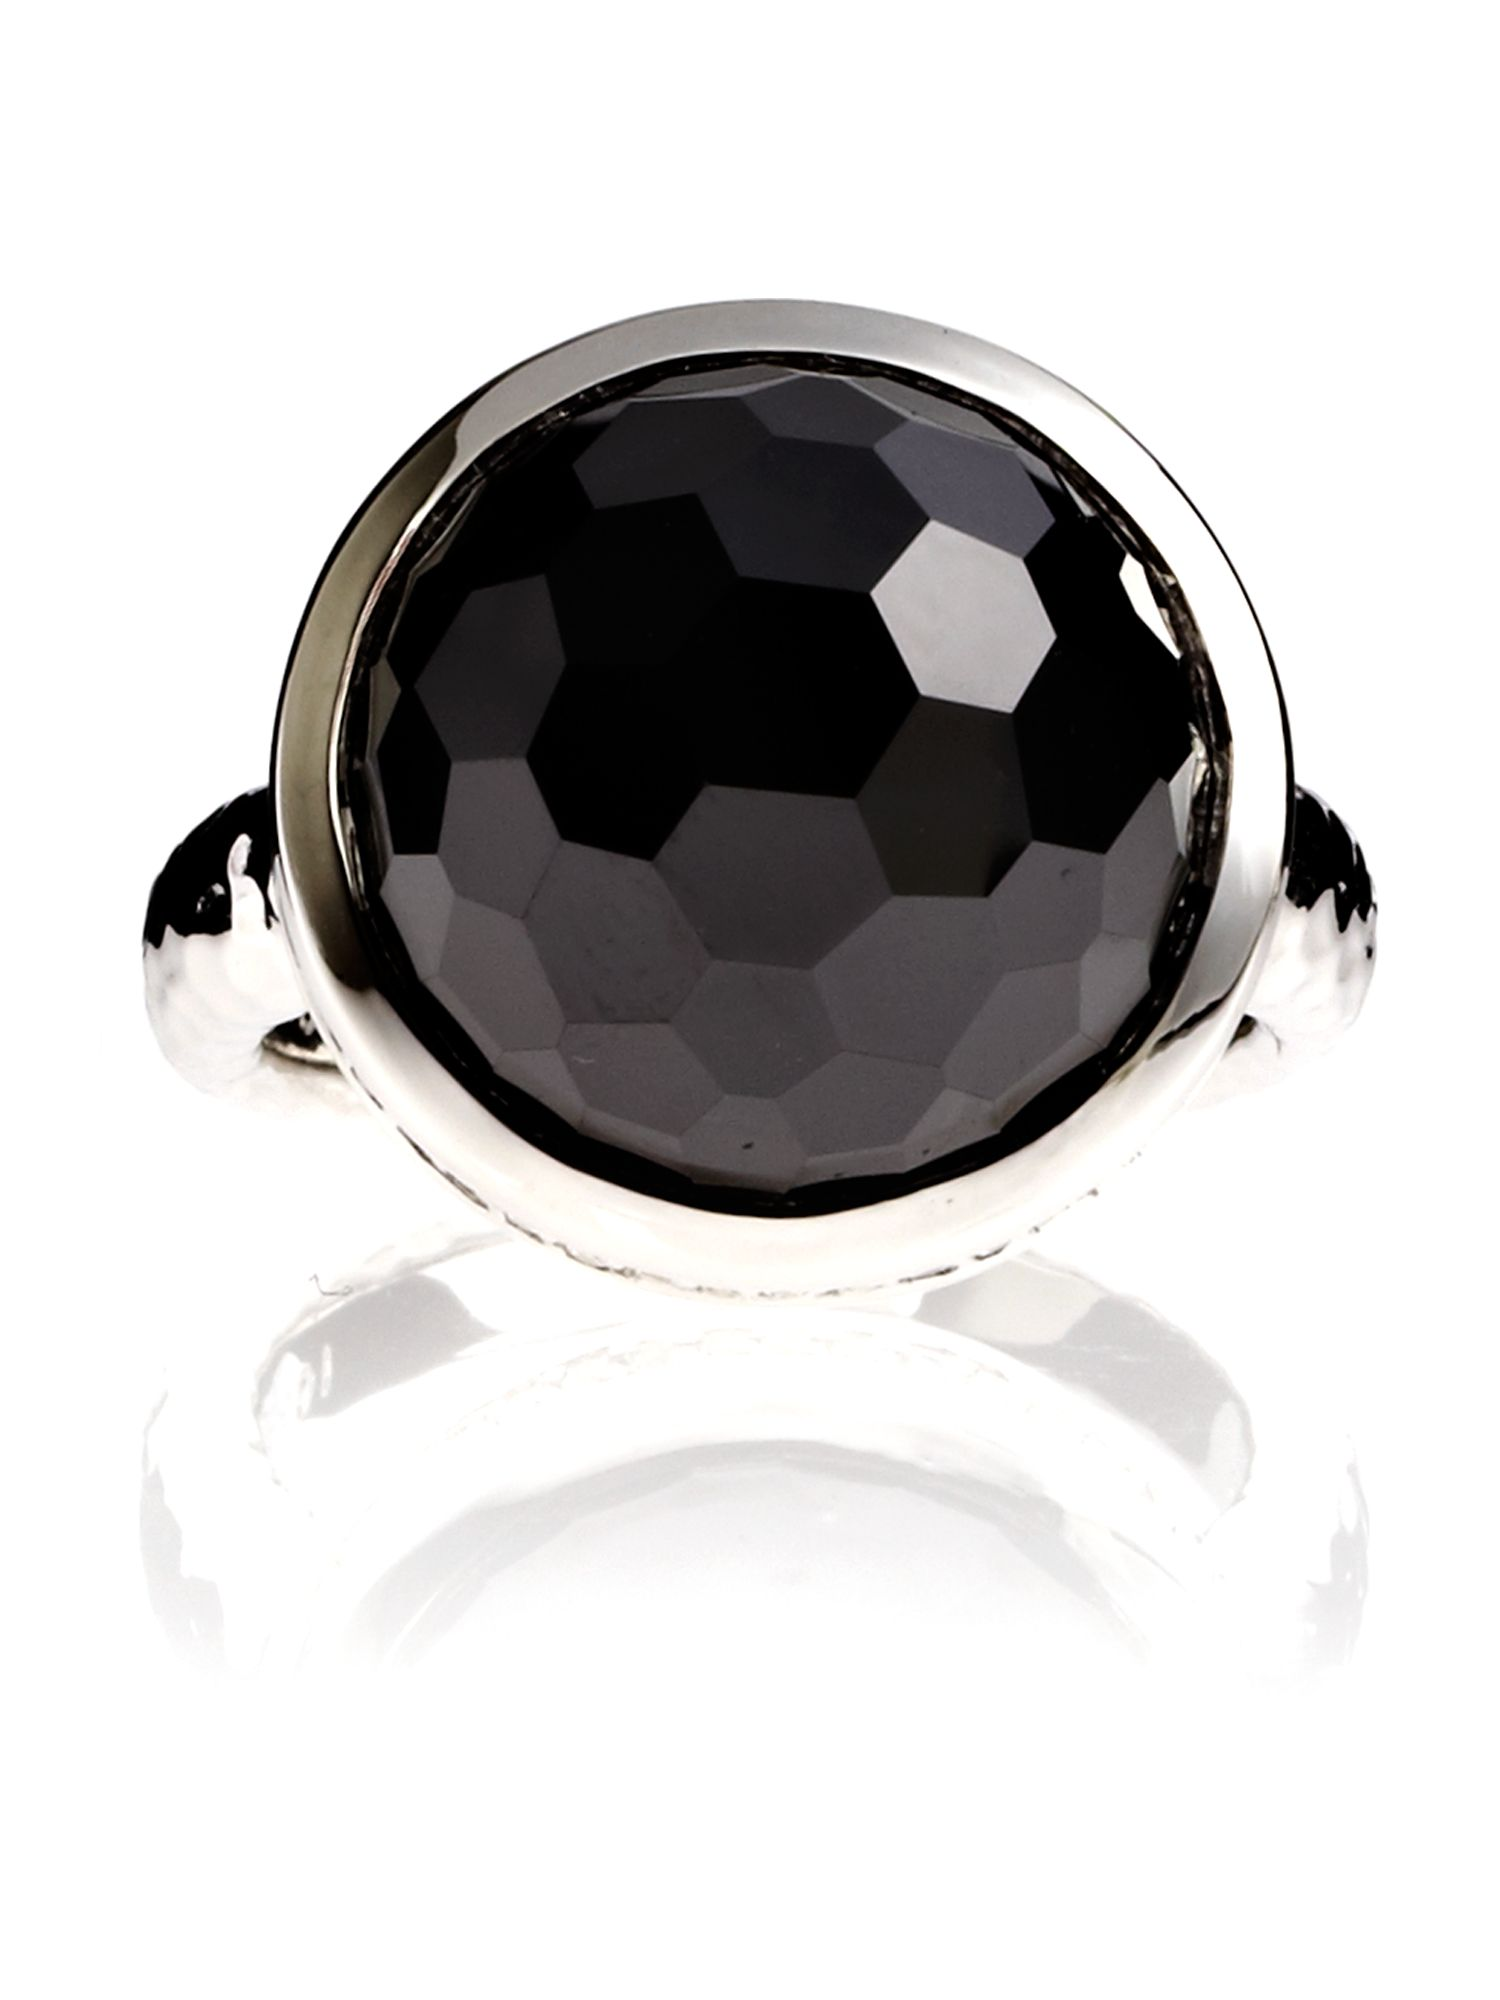 Azendi Dome Facets Large Black Cocktail Ring, Black